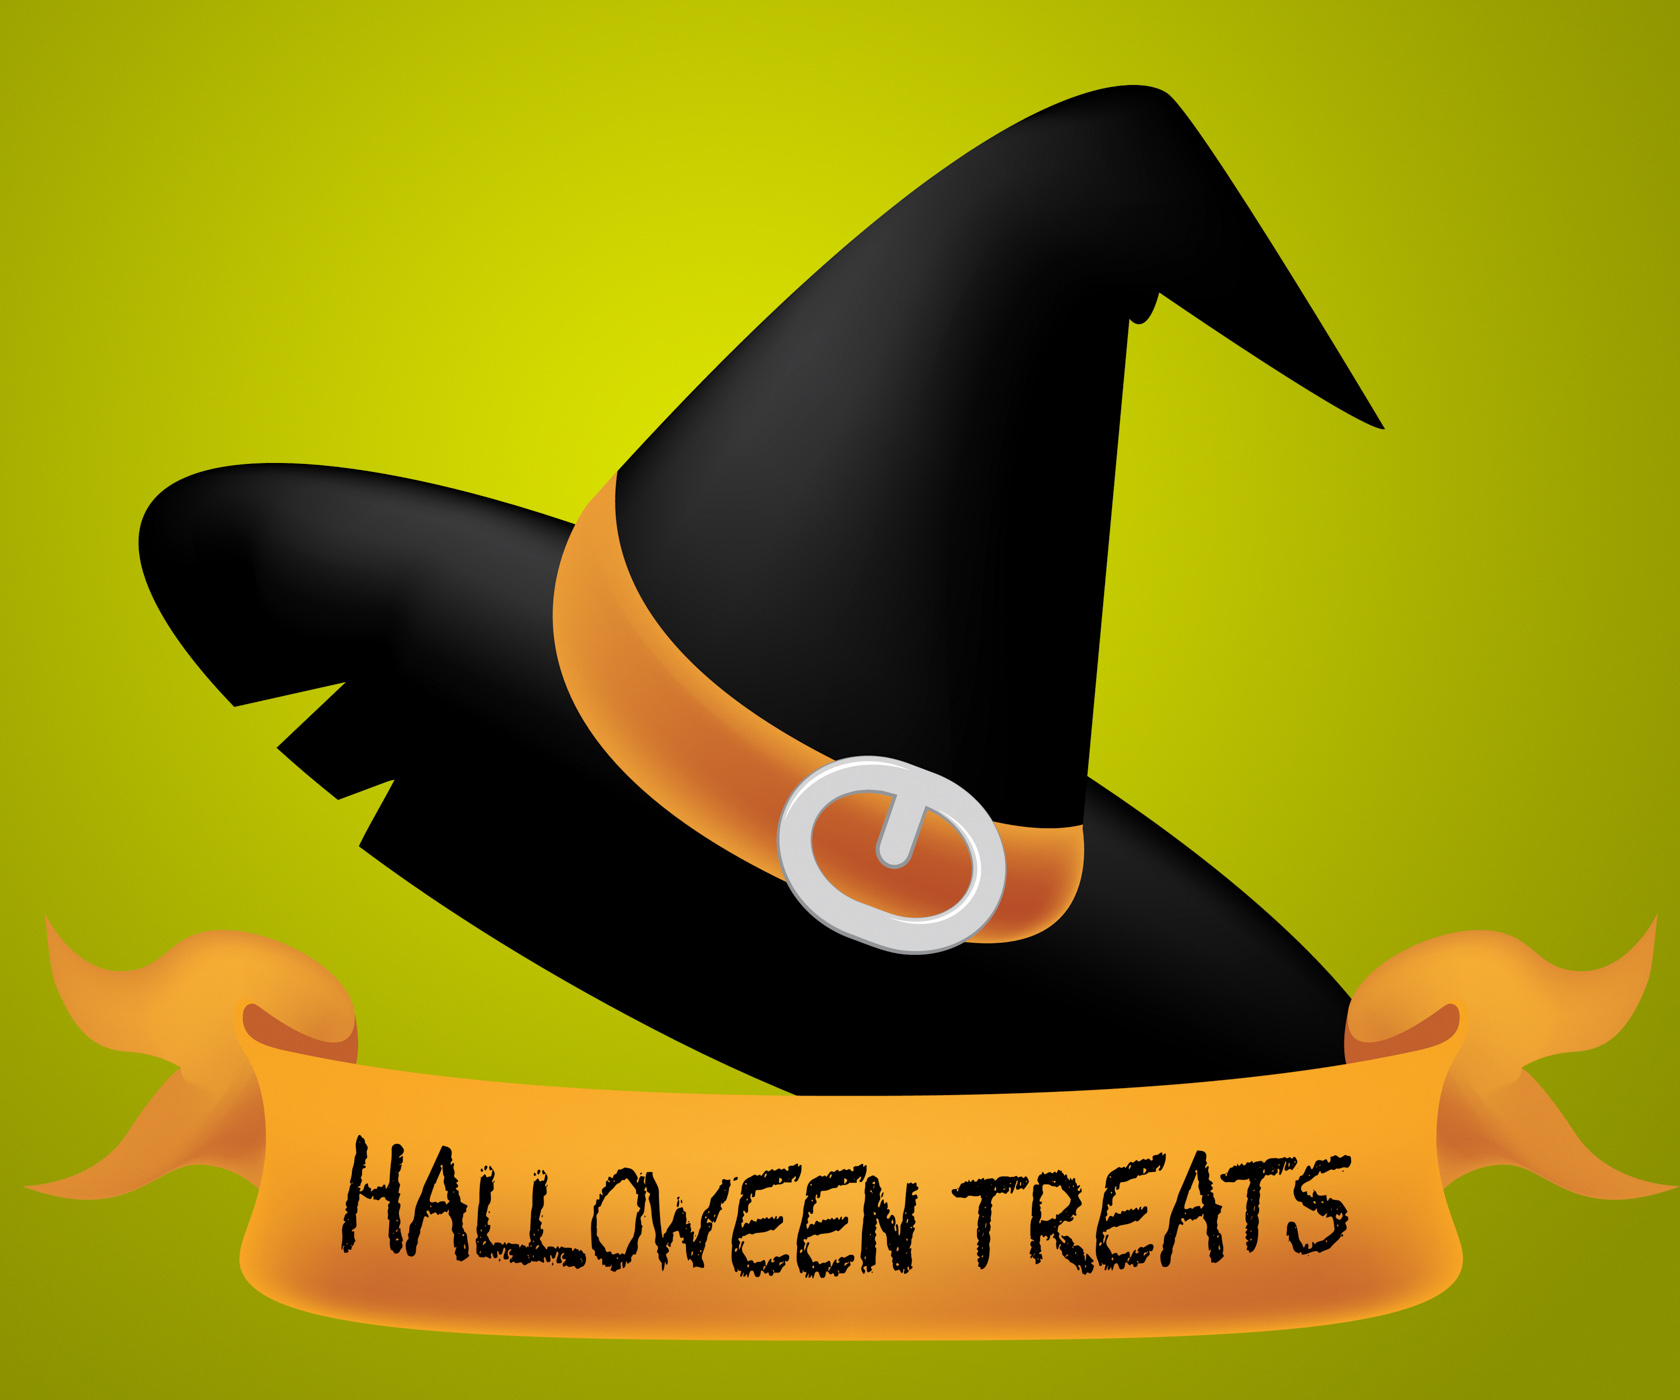 Halloween treats indicates candies horror and ghost photo